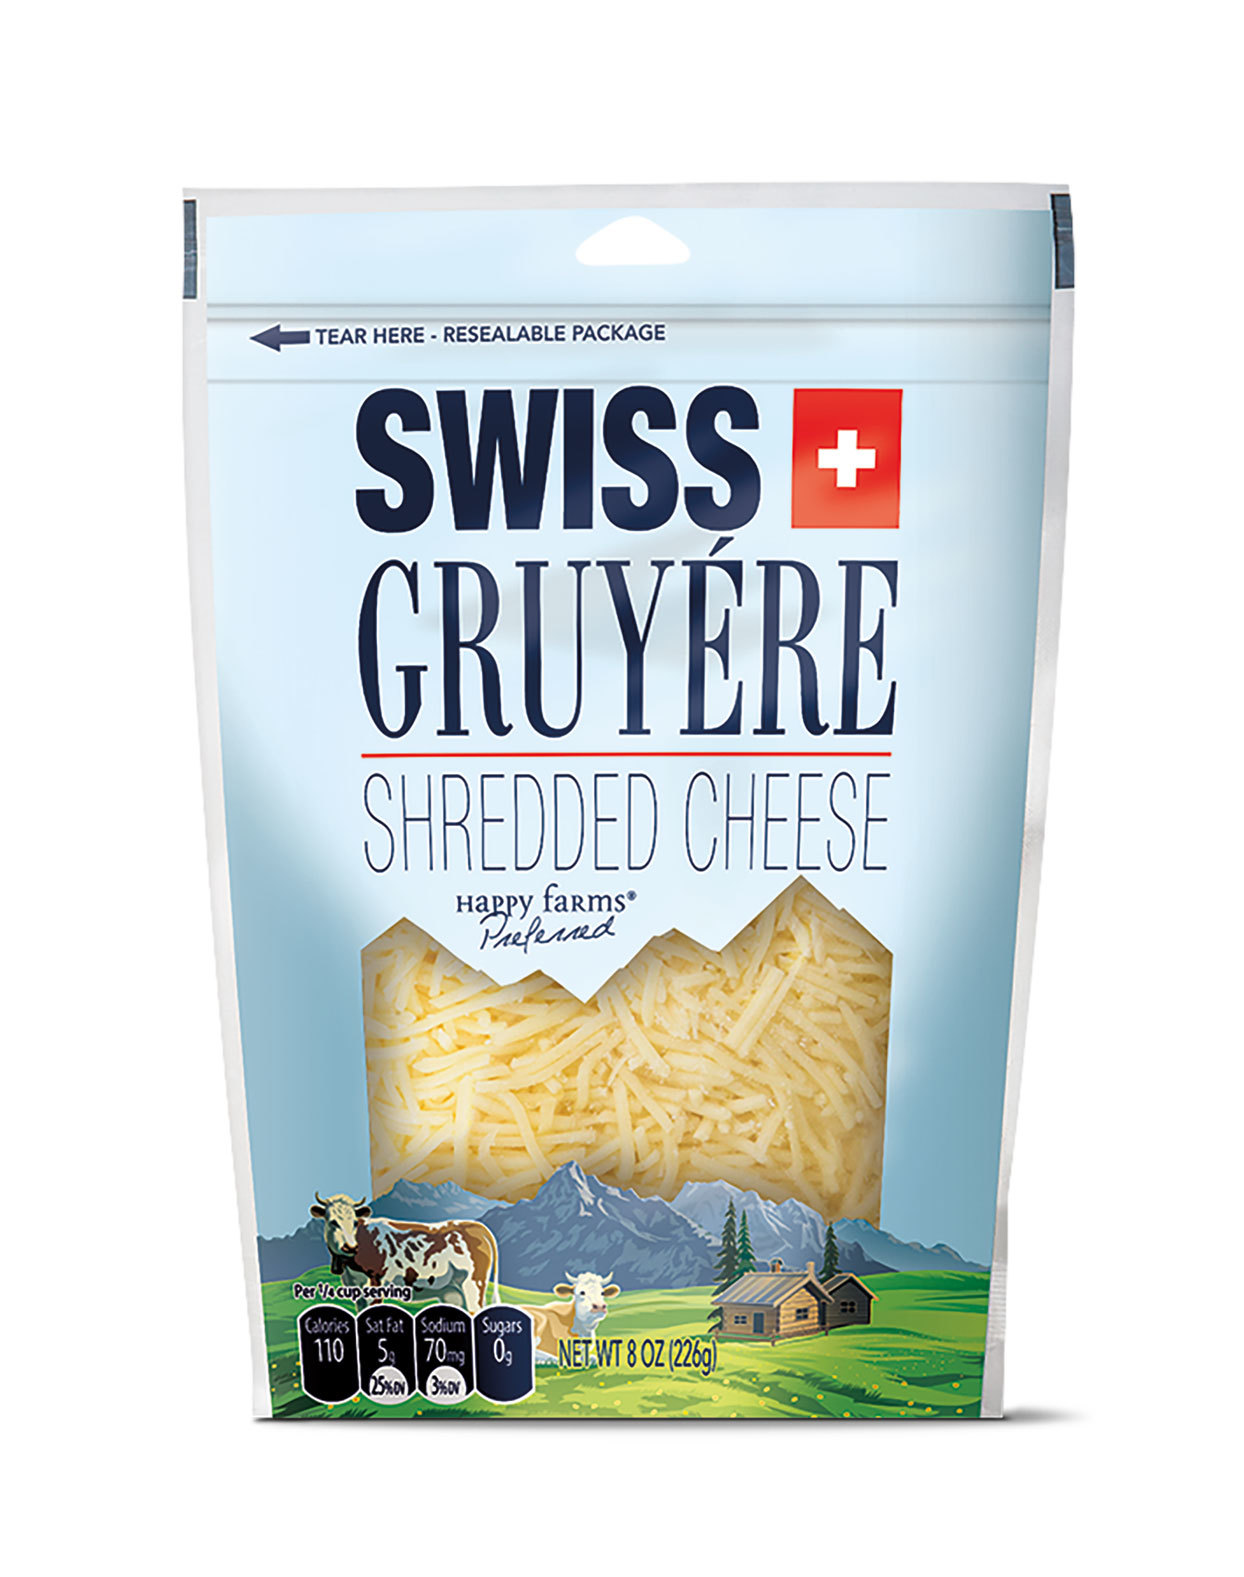 Swiss Gruyere Shredded Cheese in a bag